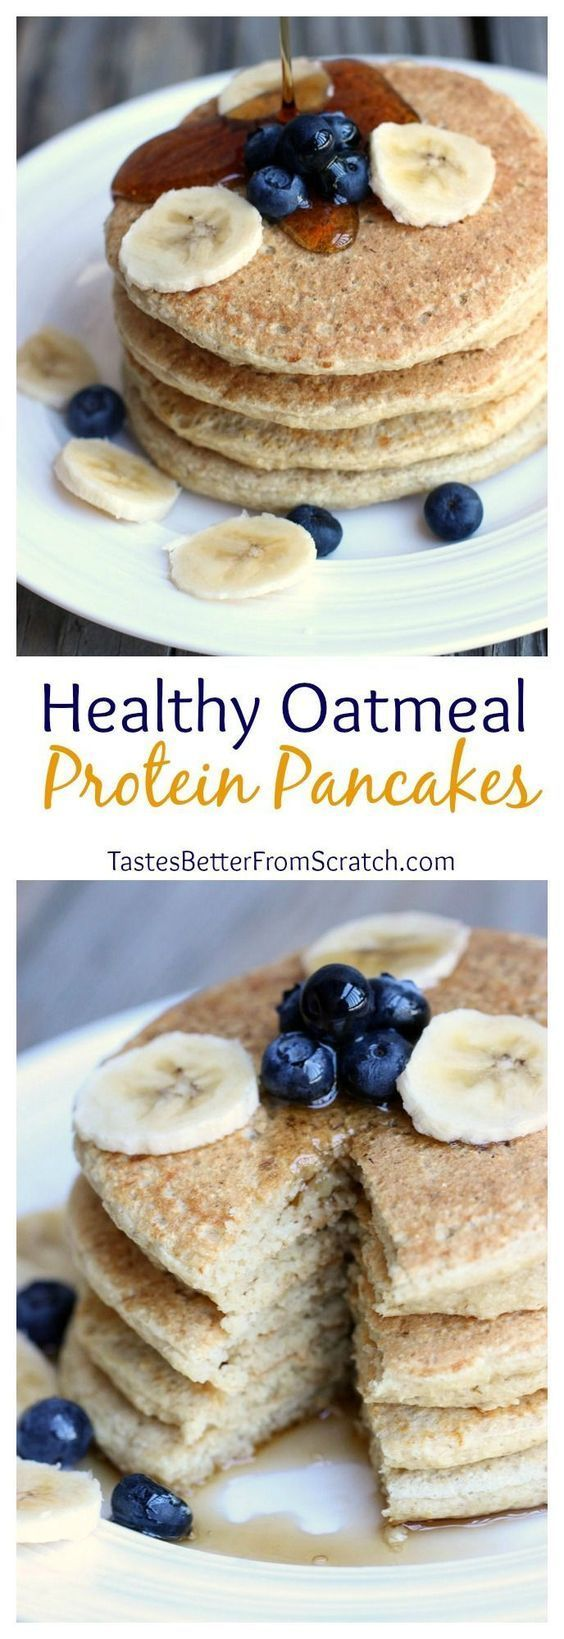 63 High Protein Breakfast Ideas for a Quick Energy Boost